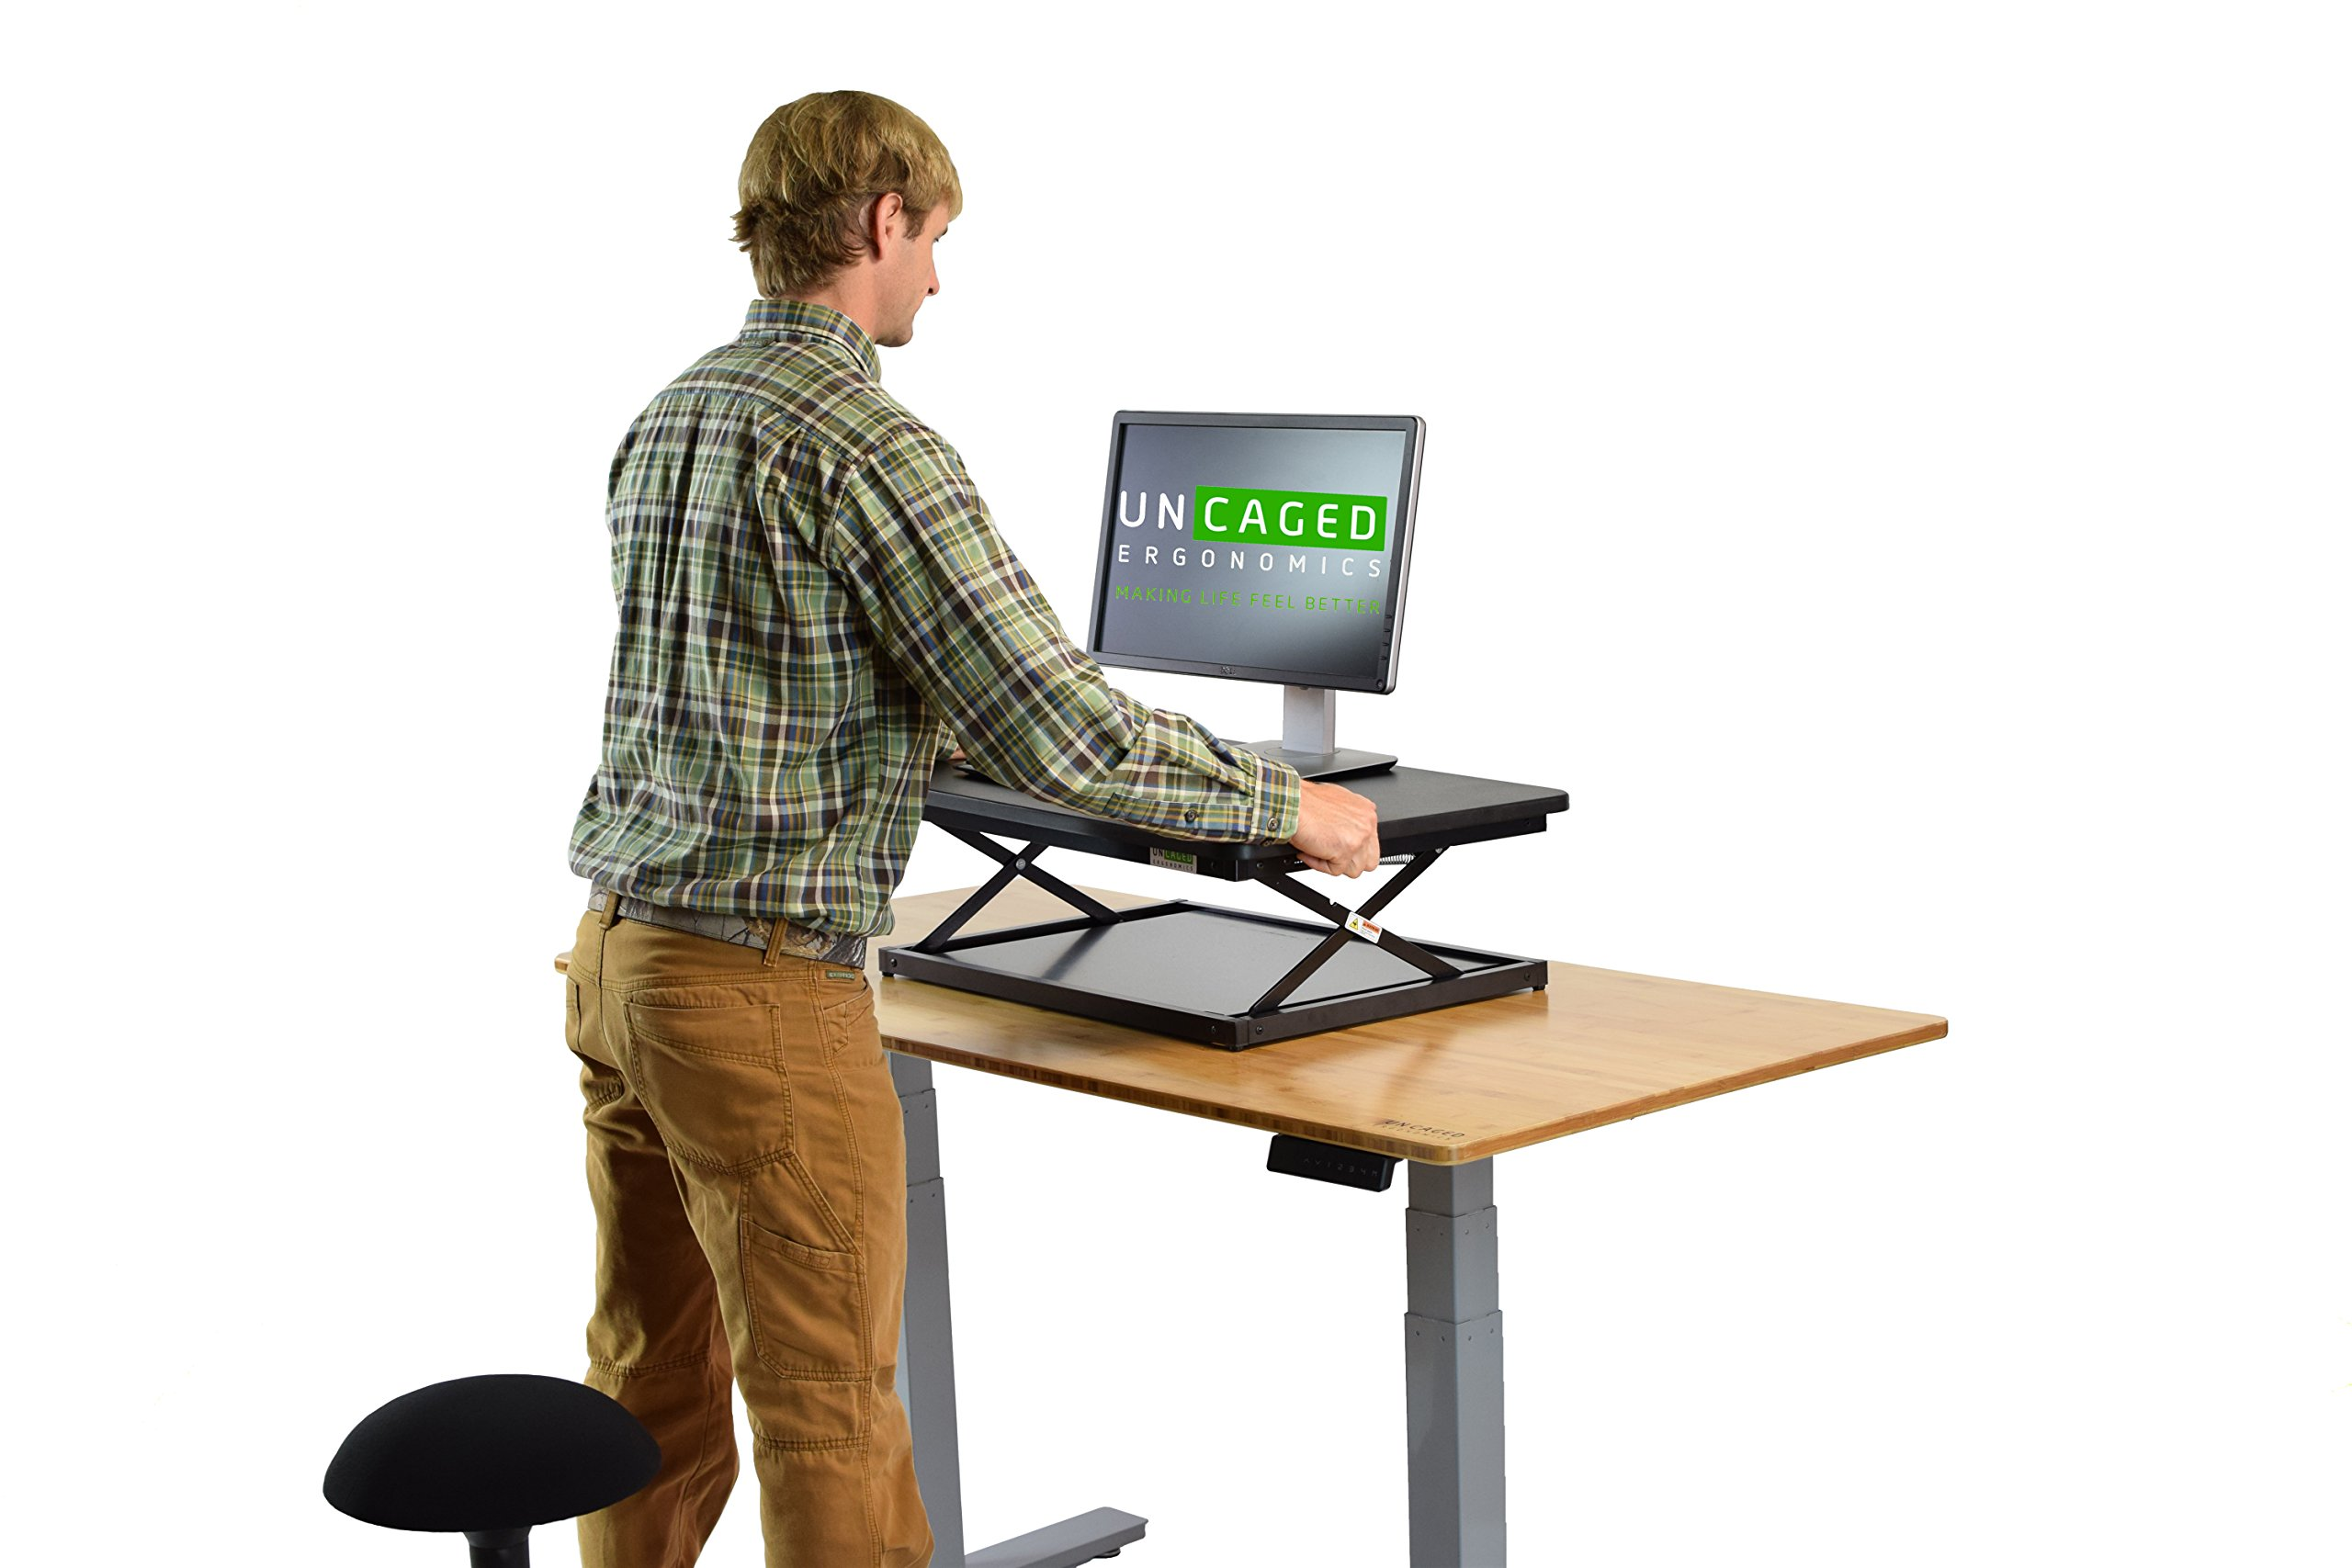 CHANGEdesk Mini Small Adjustable Height Standing Desk Converter for Laptop MacBook Single Monitor Desktop Computer Portable Lightweight Ergonomic sit Stand up Corner Riser Affordable Compact Tabletop by Uncaged Ergonomics (Image #3)